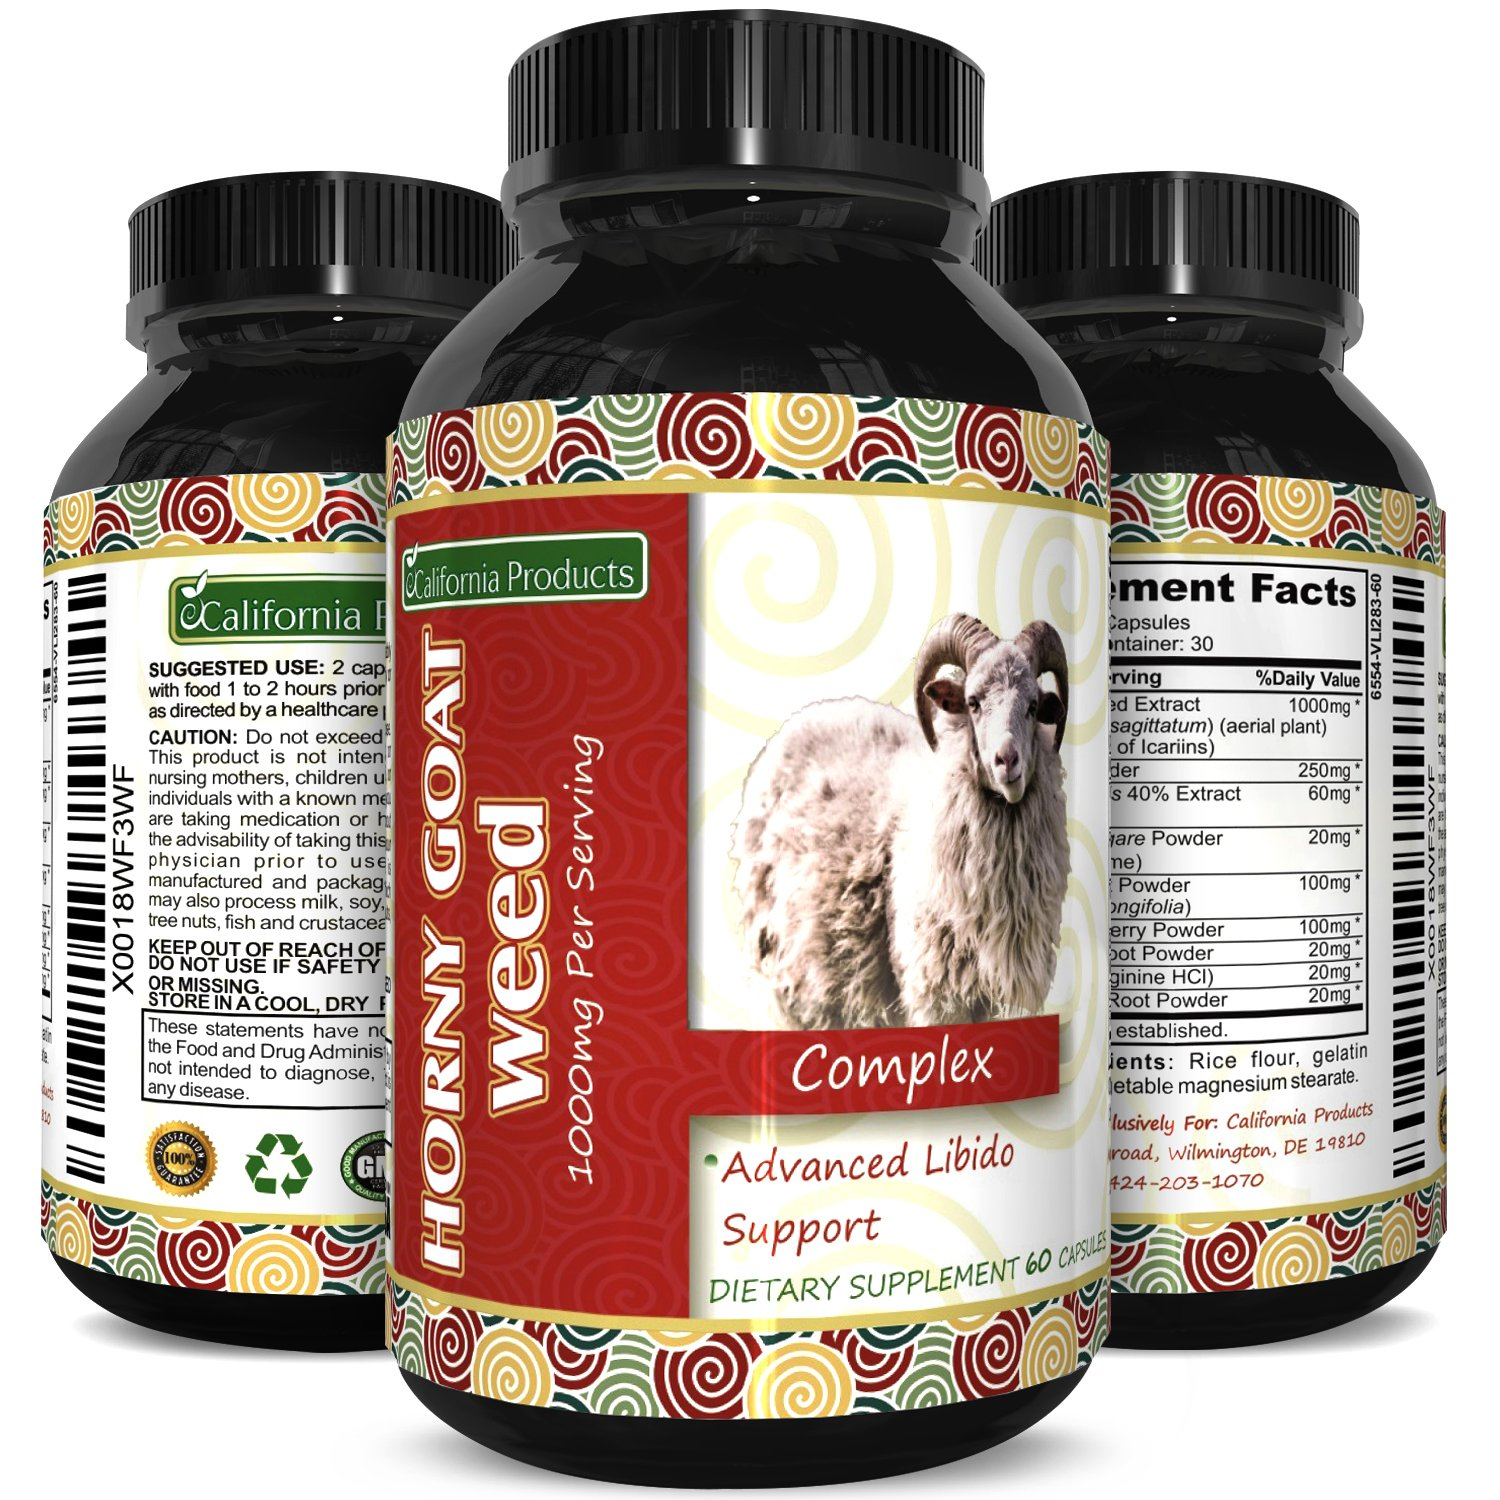 Horny Goat Weed Extract – Libido Supplement for Men & Women – Boosts Sex Drive & Increases Desire Naturally – Extra Strength Herbal Formula – With Maca Root & Tongkat Ali – By California Products by California Products (Image #2)